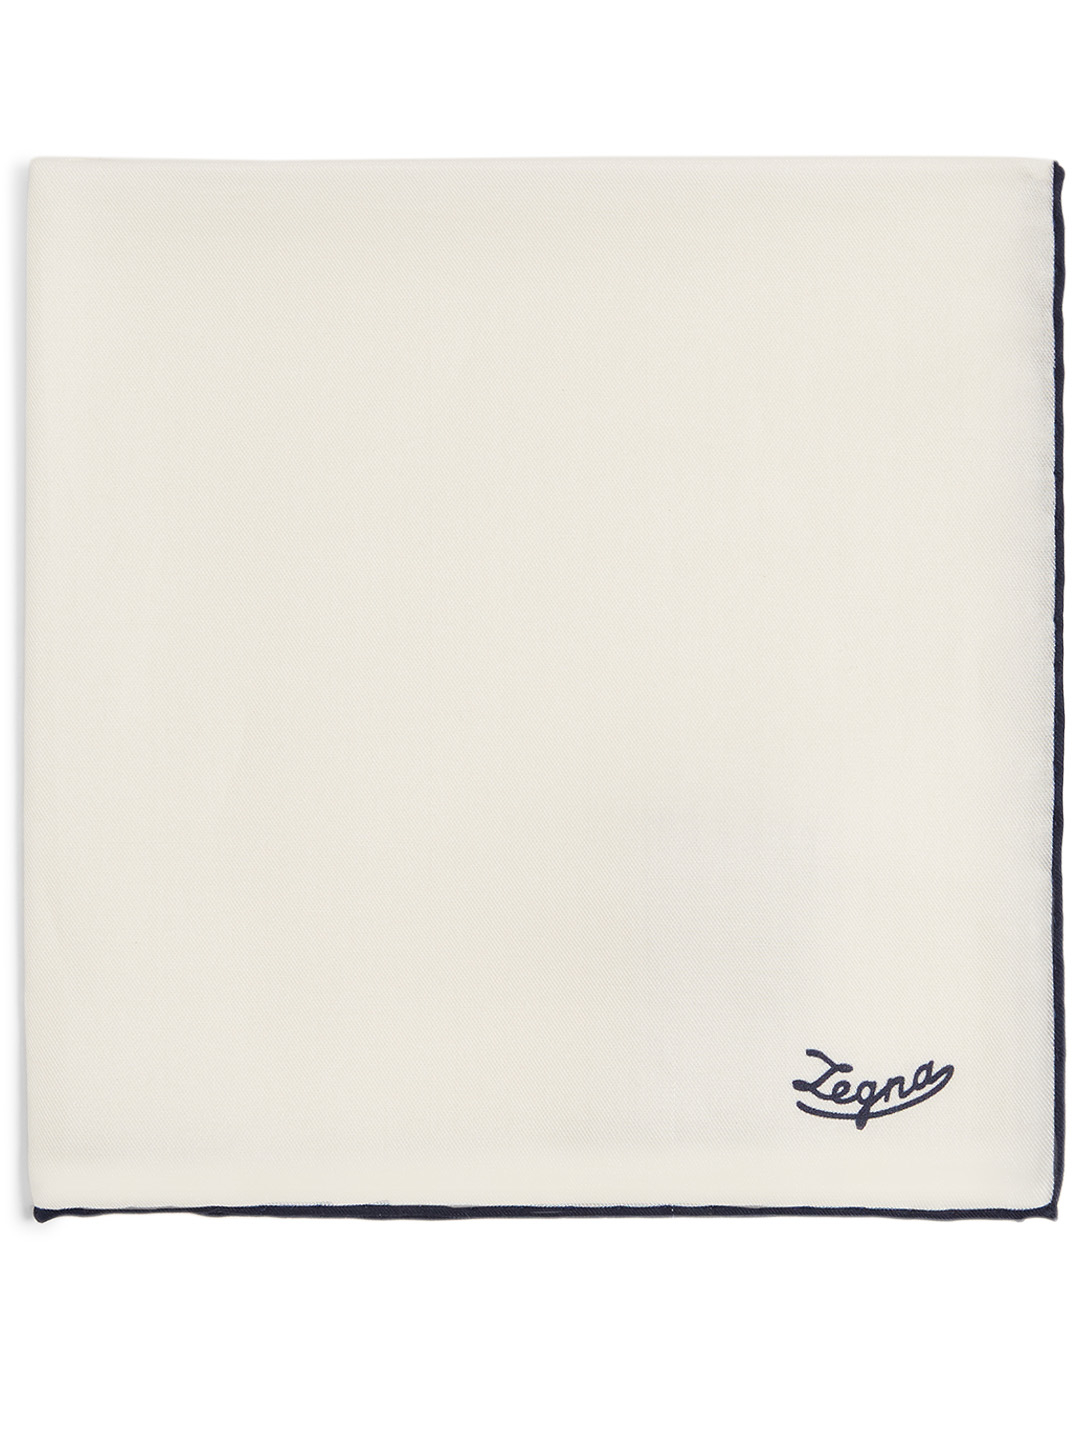 ERMENEGILDO ZEGNA Pocket Square With Logo Men's White